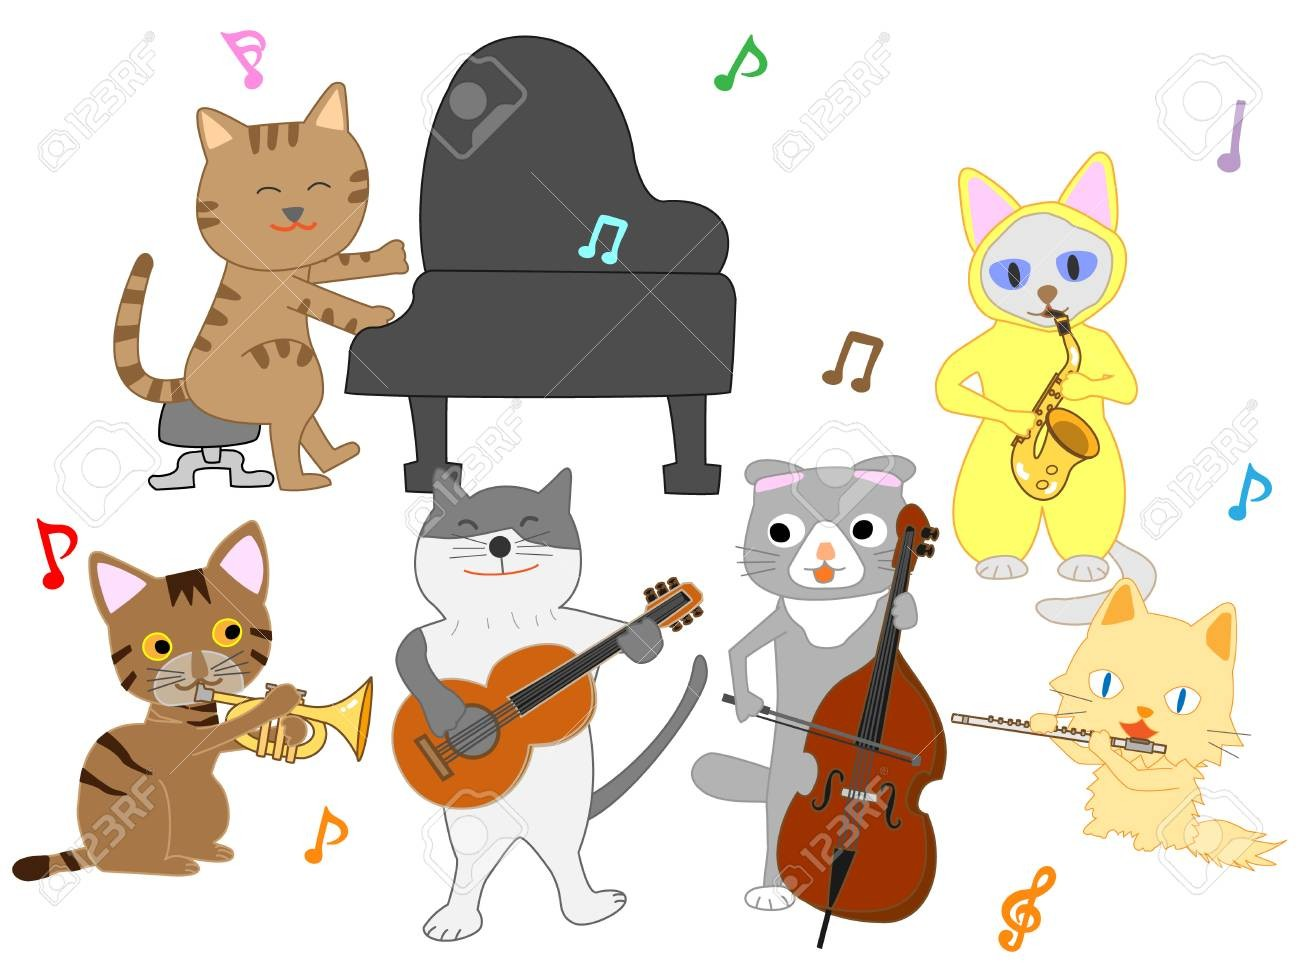 Animals playing musical instruments clipart graphic royalty free library For Clip Art Animals Playing Musical Instruments 94976019 Cat ... graphic royalty free library